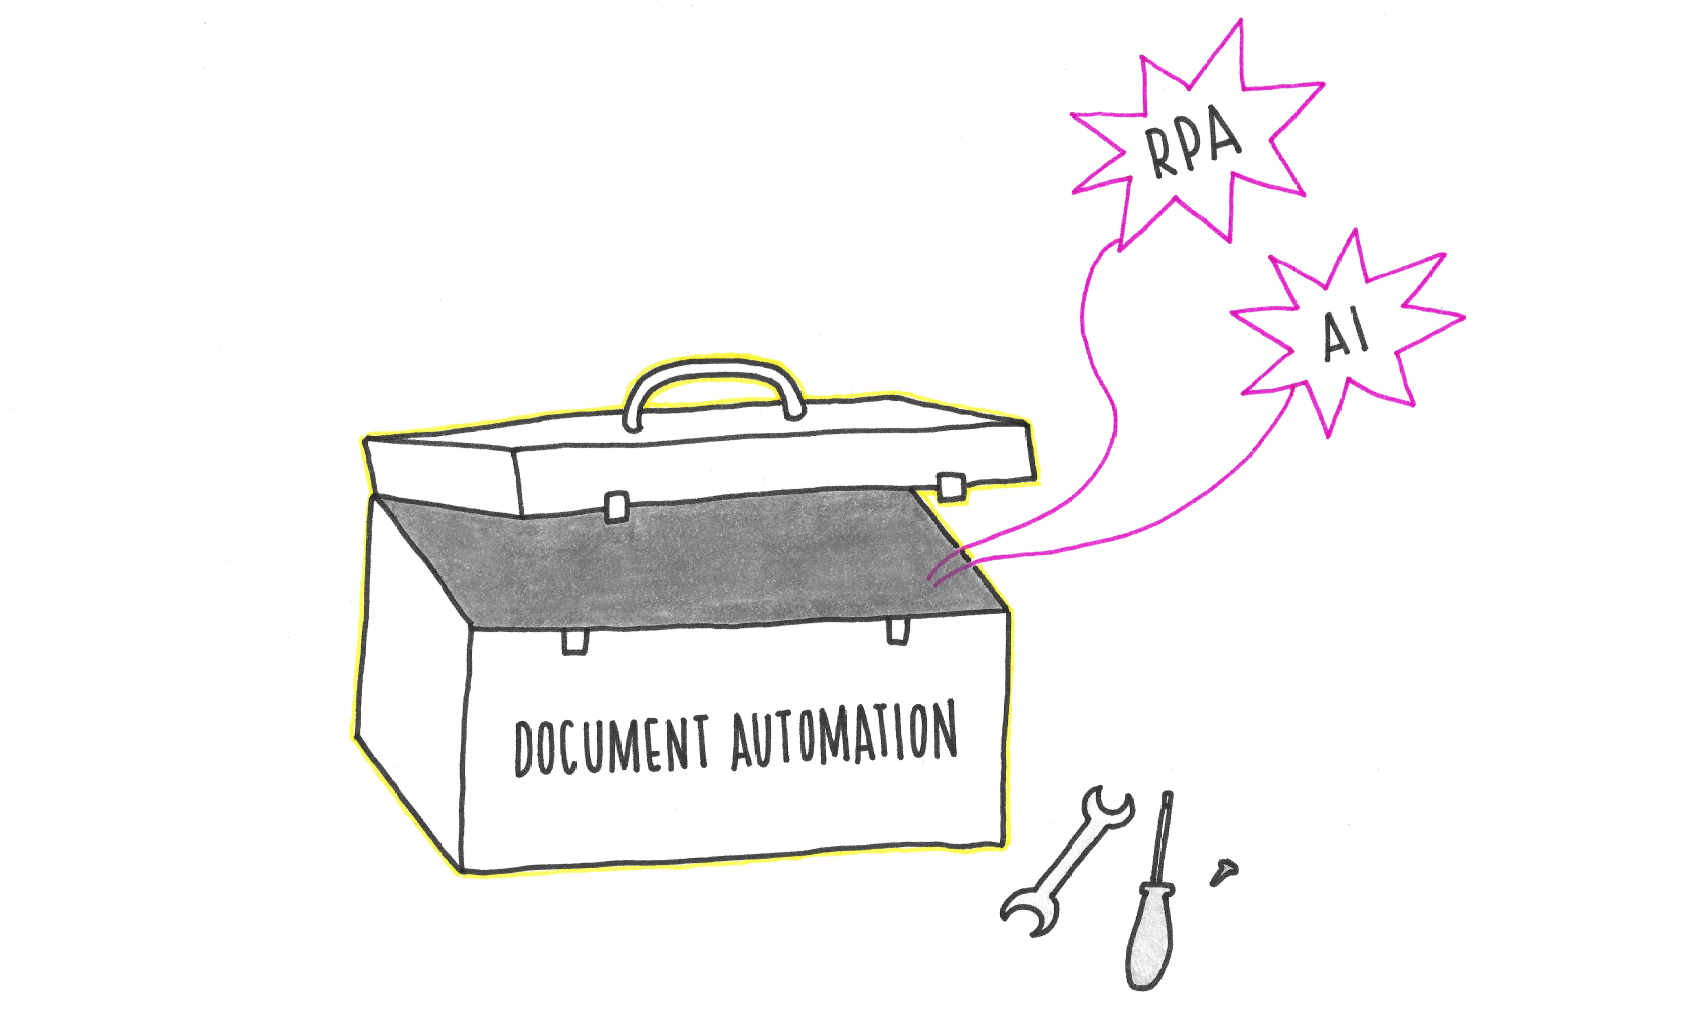 Hand drawn image of a toolbox with the label DOCUMENT AUTOMATION, with AI and RPA floating out of it.